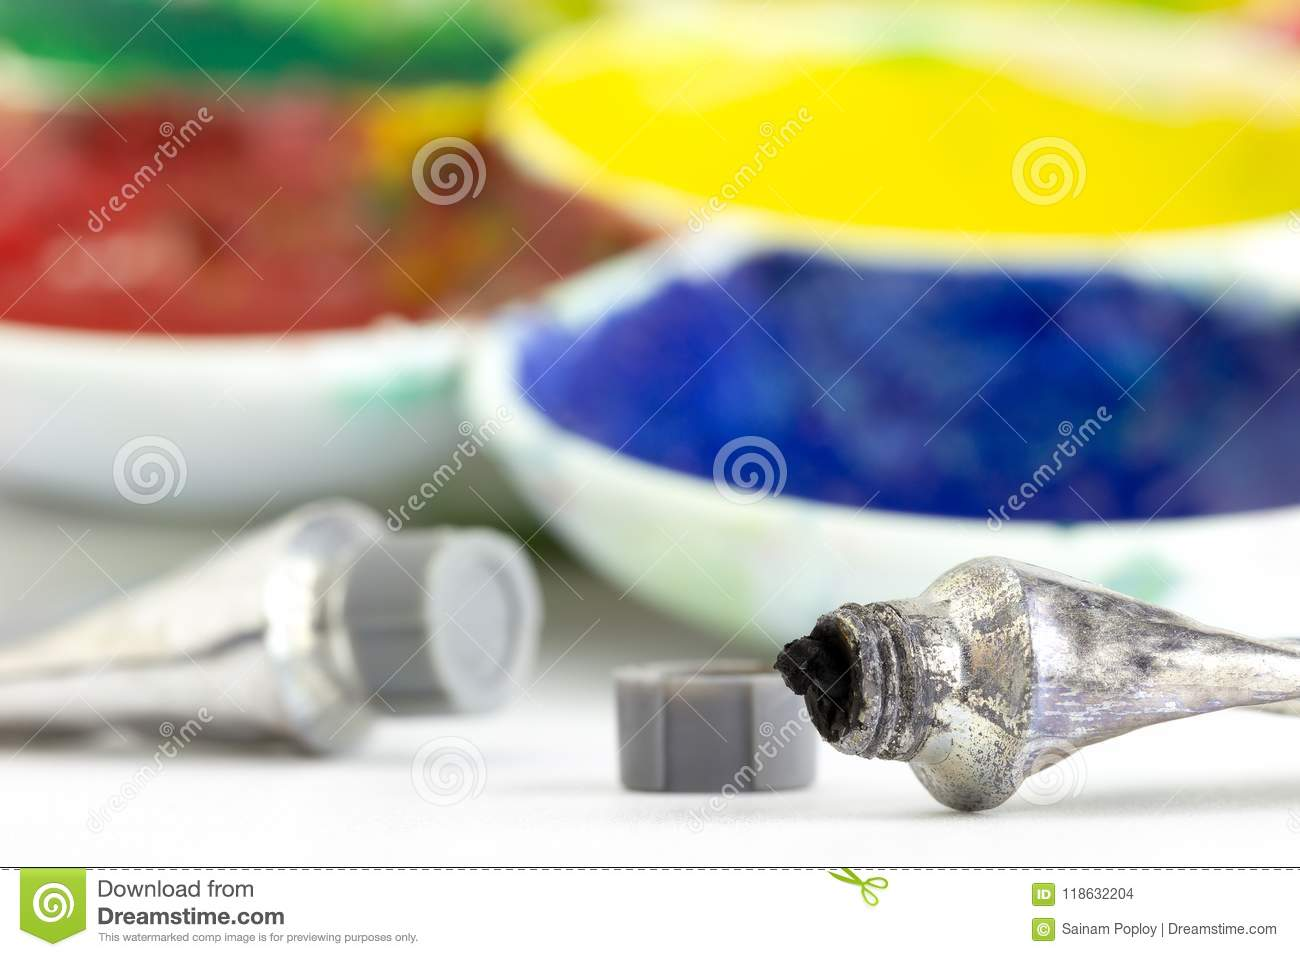 Color tubes and palettes placed on white background.